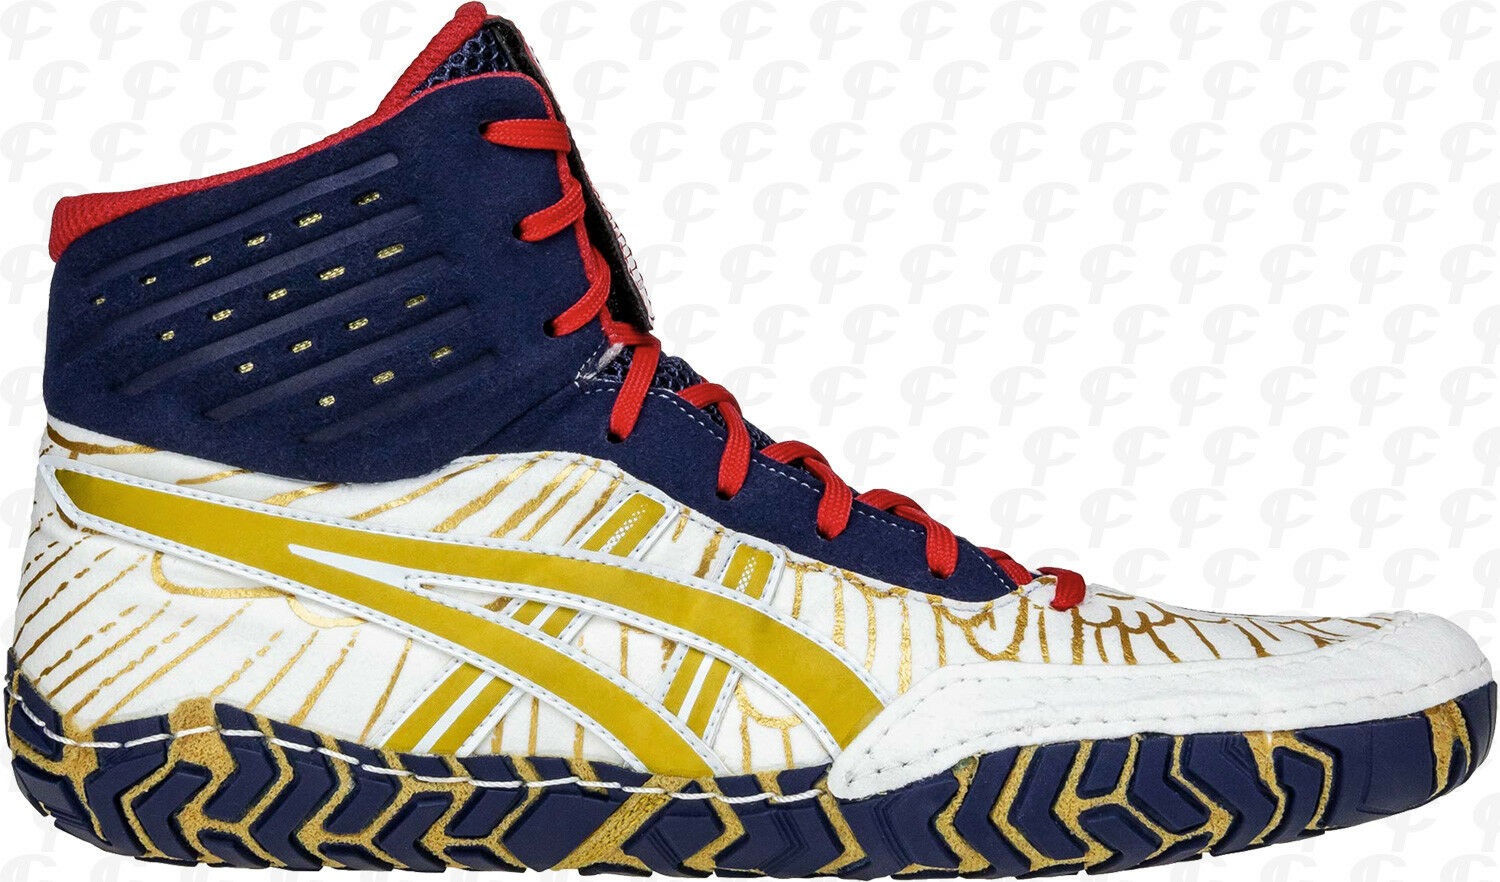 NEW Asics Aggressor 4 Wrestling shoes - Special color Edition FREE SHIP